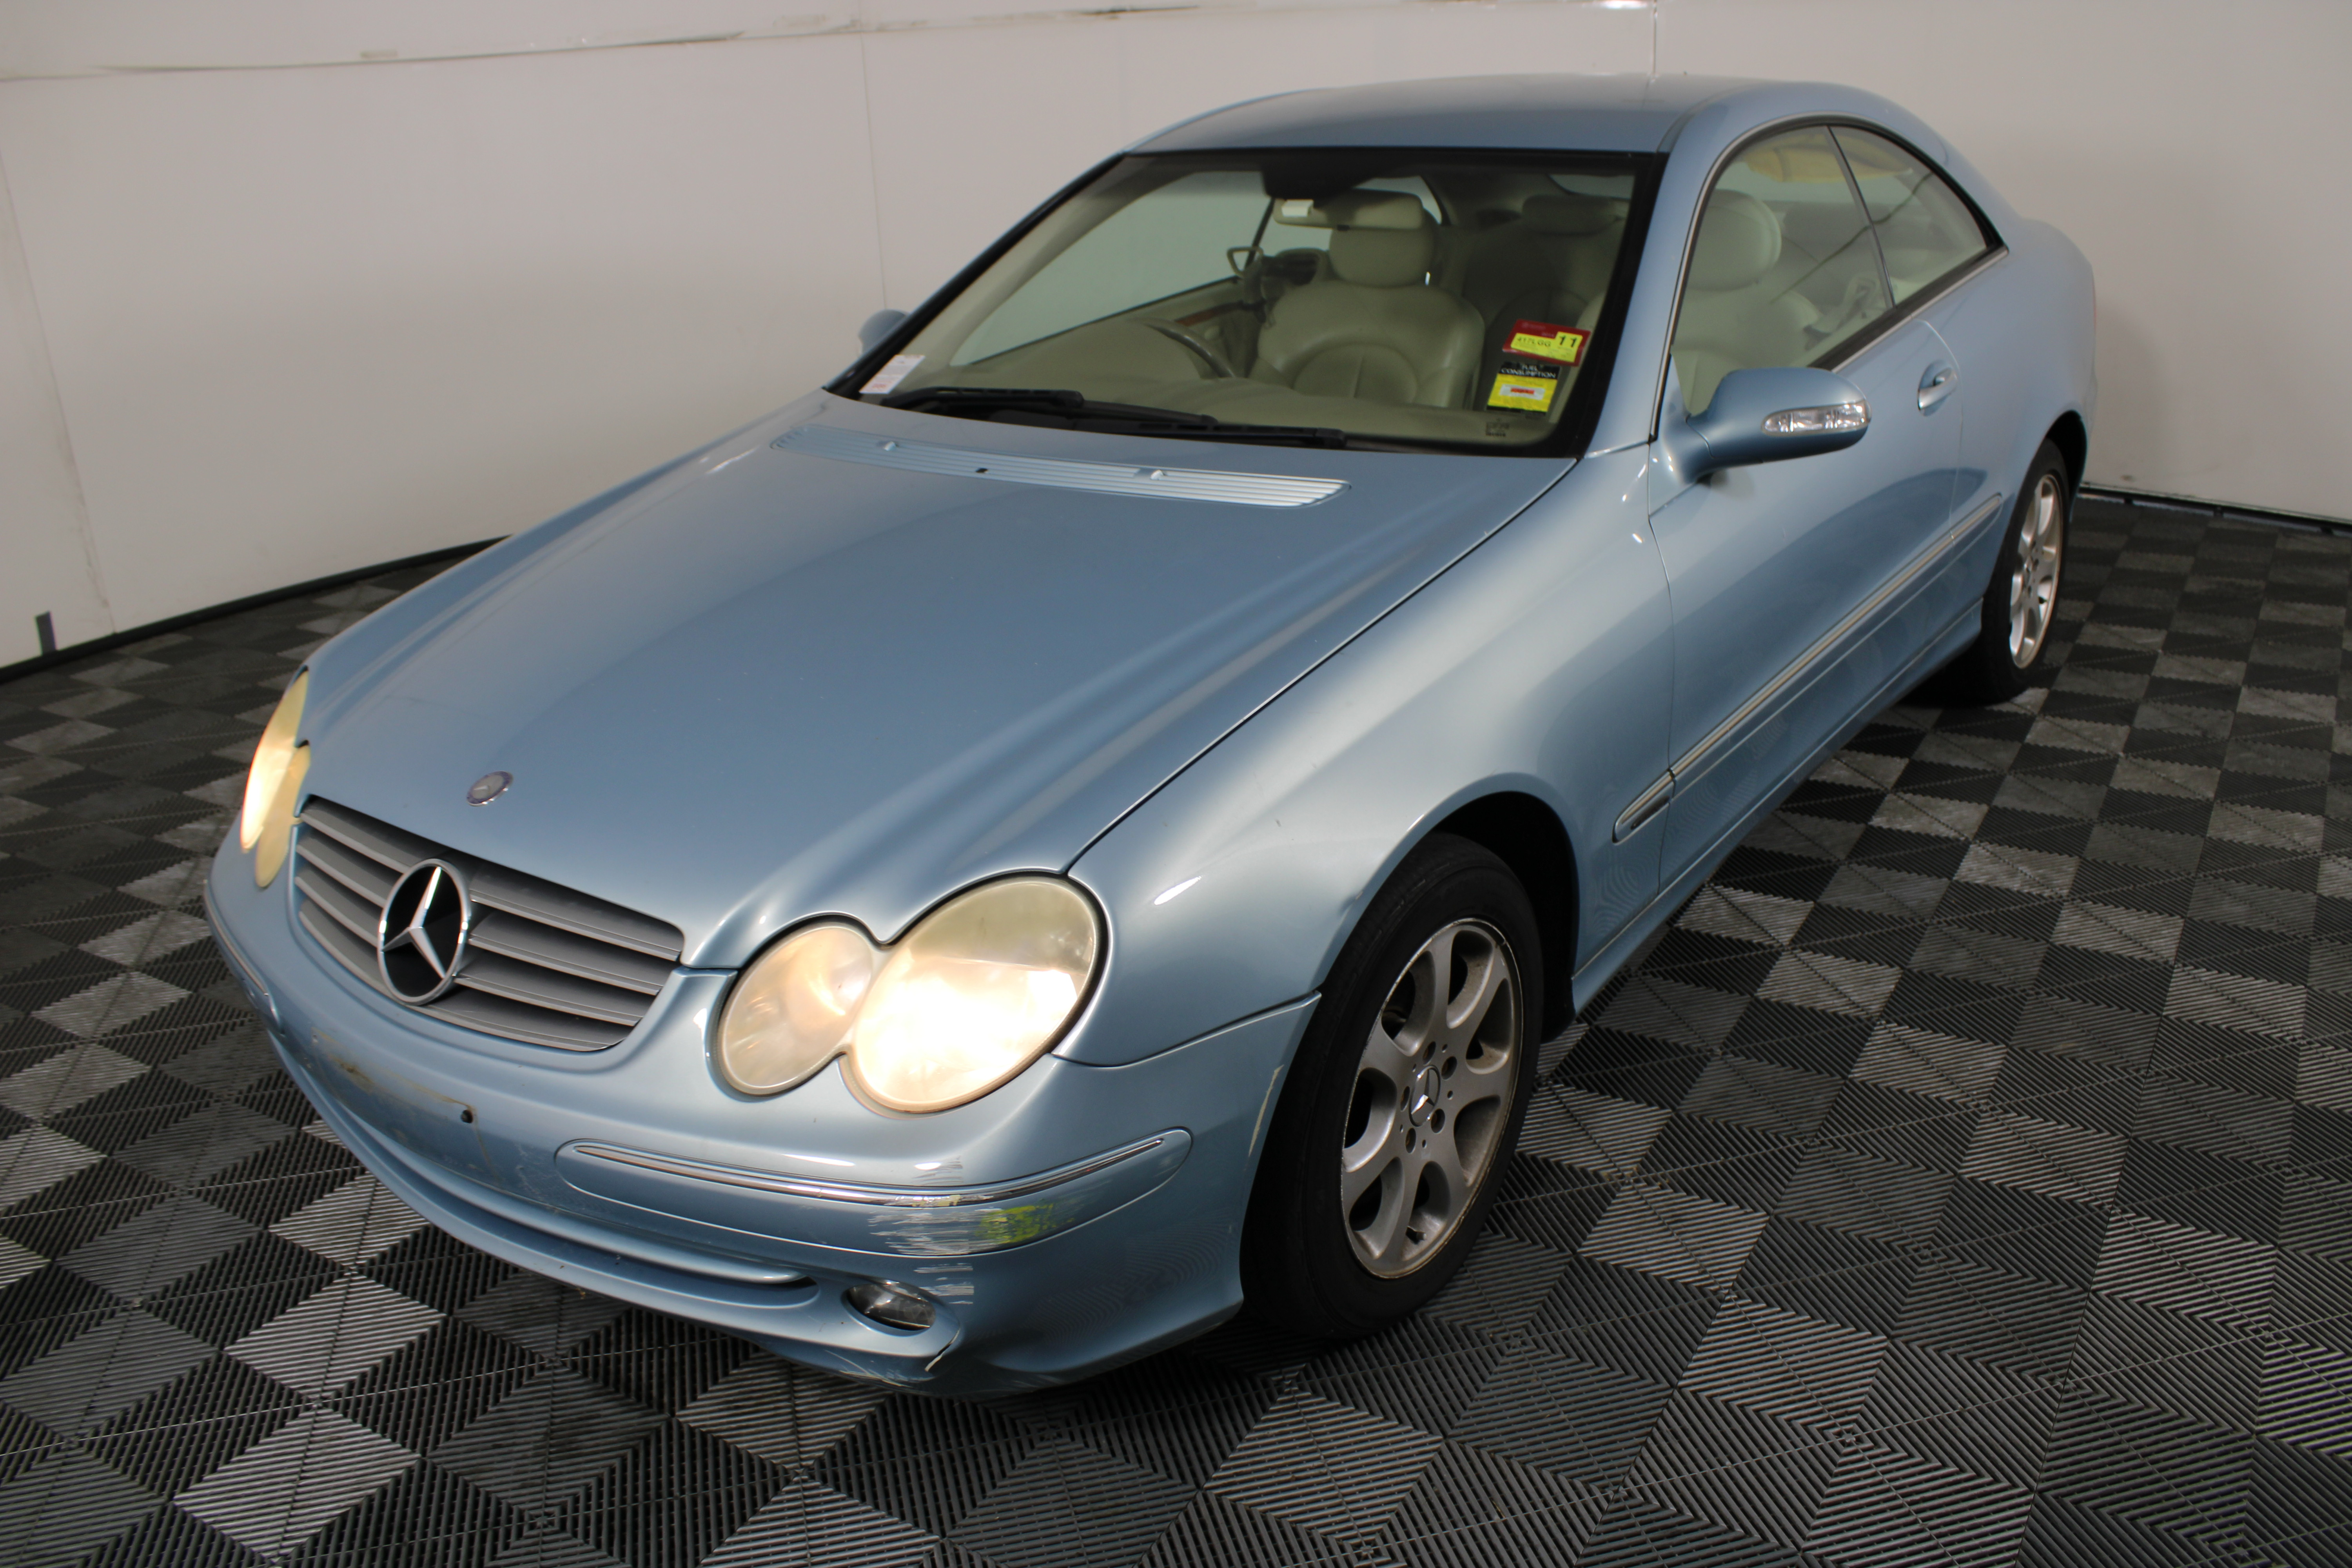 2003 Mercedes Benz CLK240 Avantgarde C209 Automatic Coupe